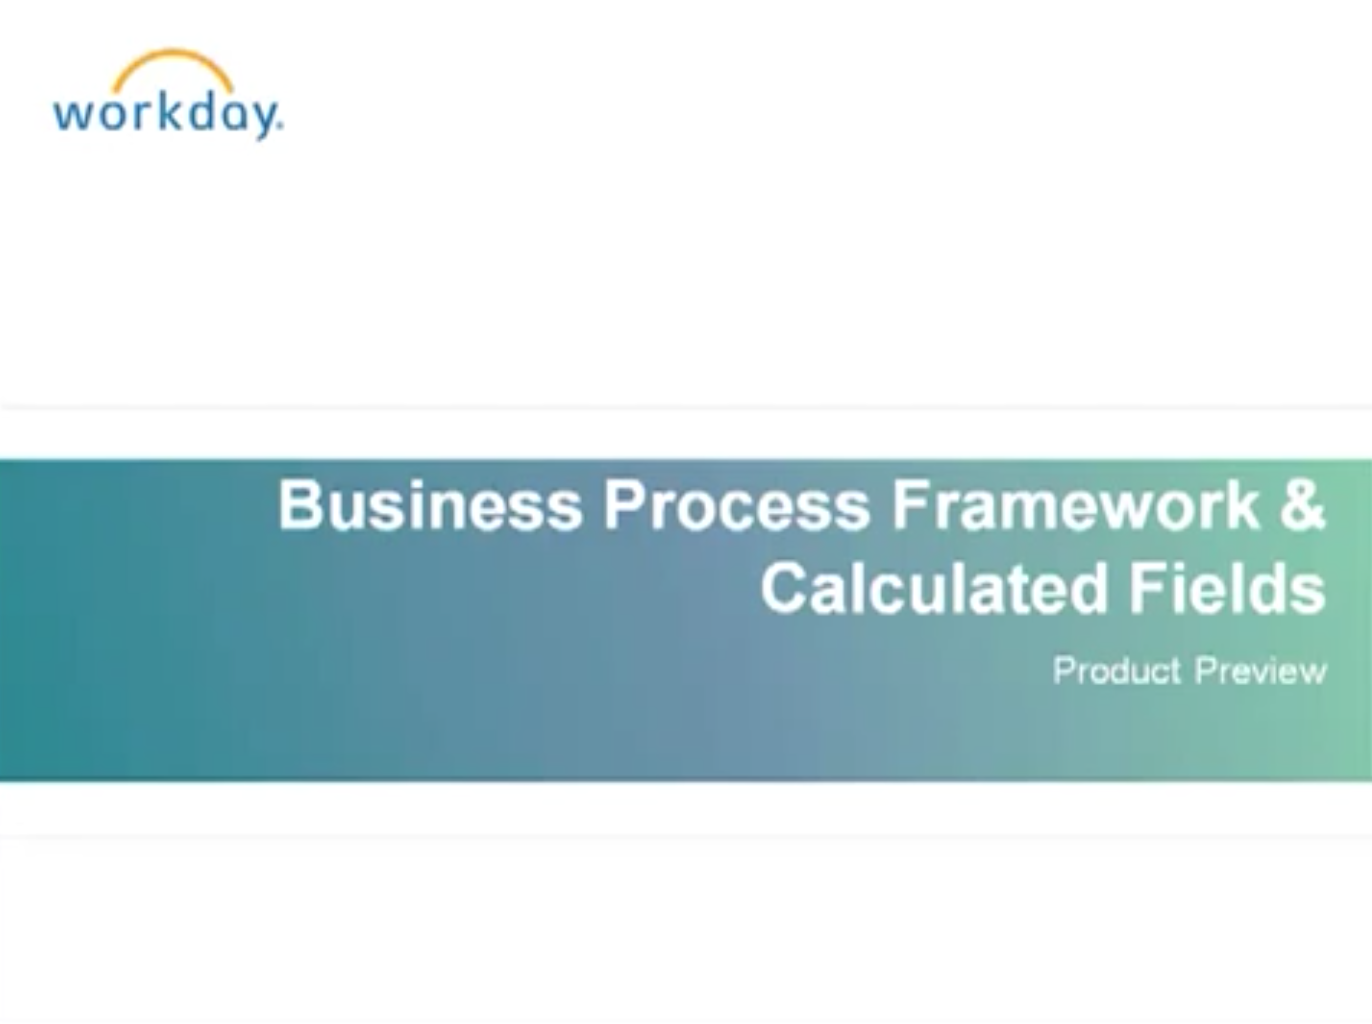 Product Preview: Business Process Framework - Human Capital